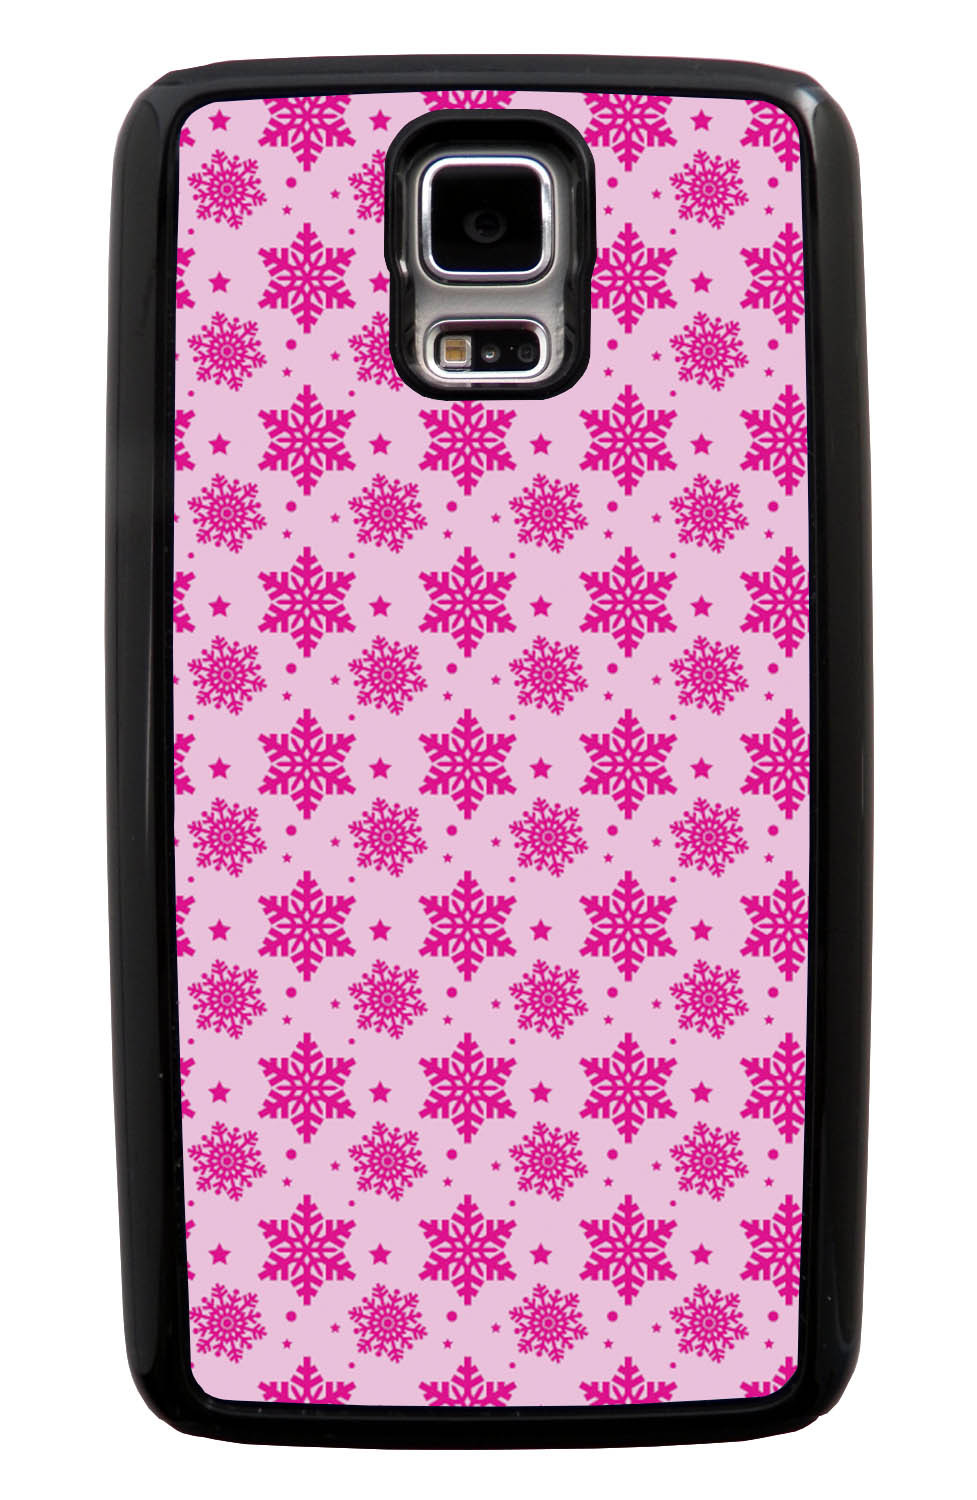 Samsung Galaxy S5 / SV Pink Case - Hot Pink Snowflakes on Pink - Fall And Winter - Black Tough Hybrid Case